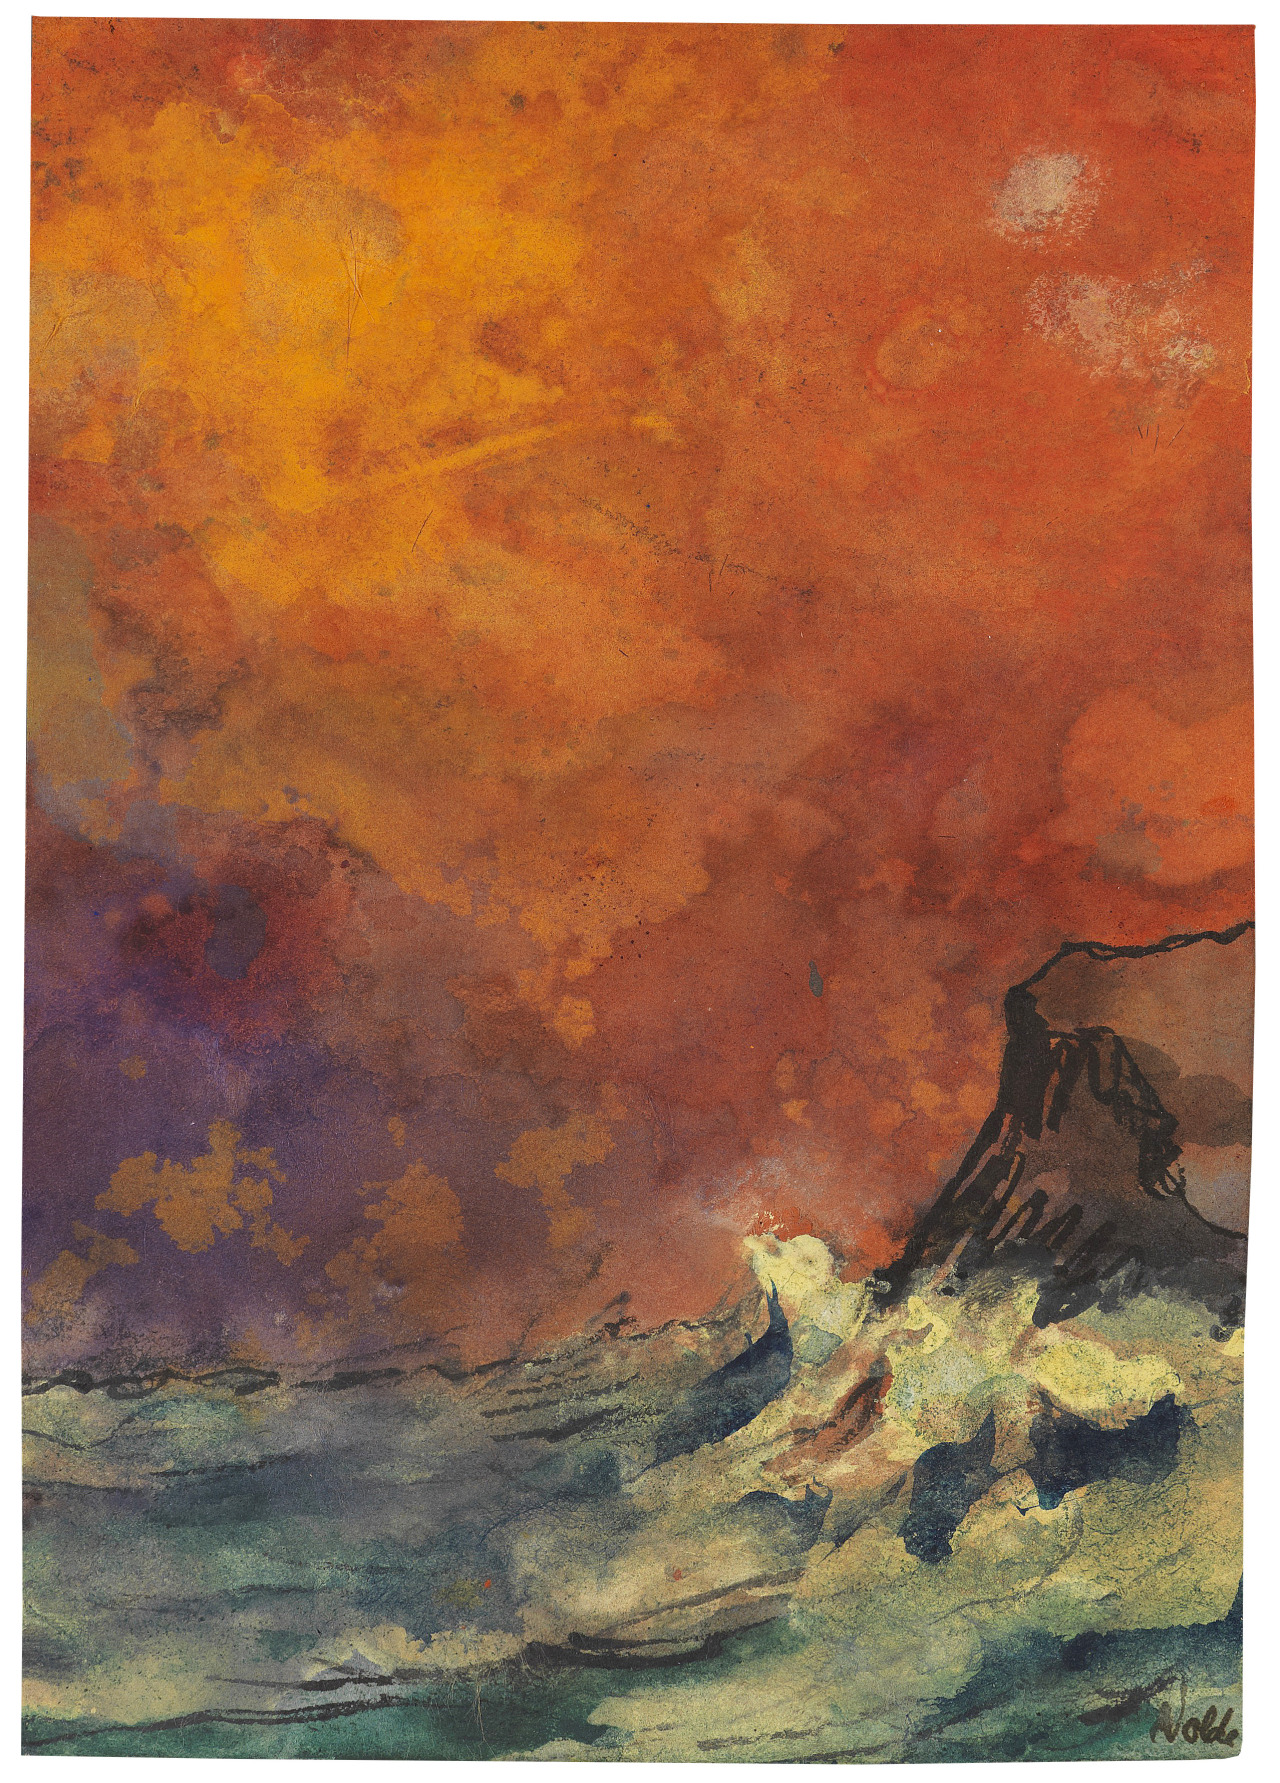 Emil Nolde (1867-1956) Brandung - Surf (c. 1937) watercolor with pen and brush ink drawing 18.2 x 12.9 cm